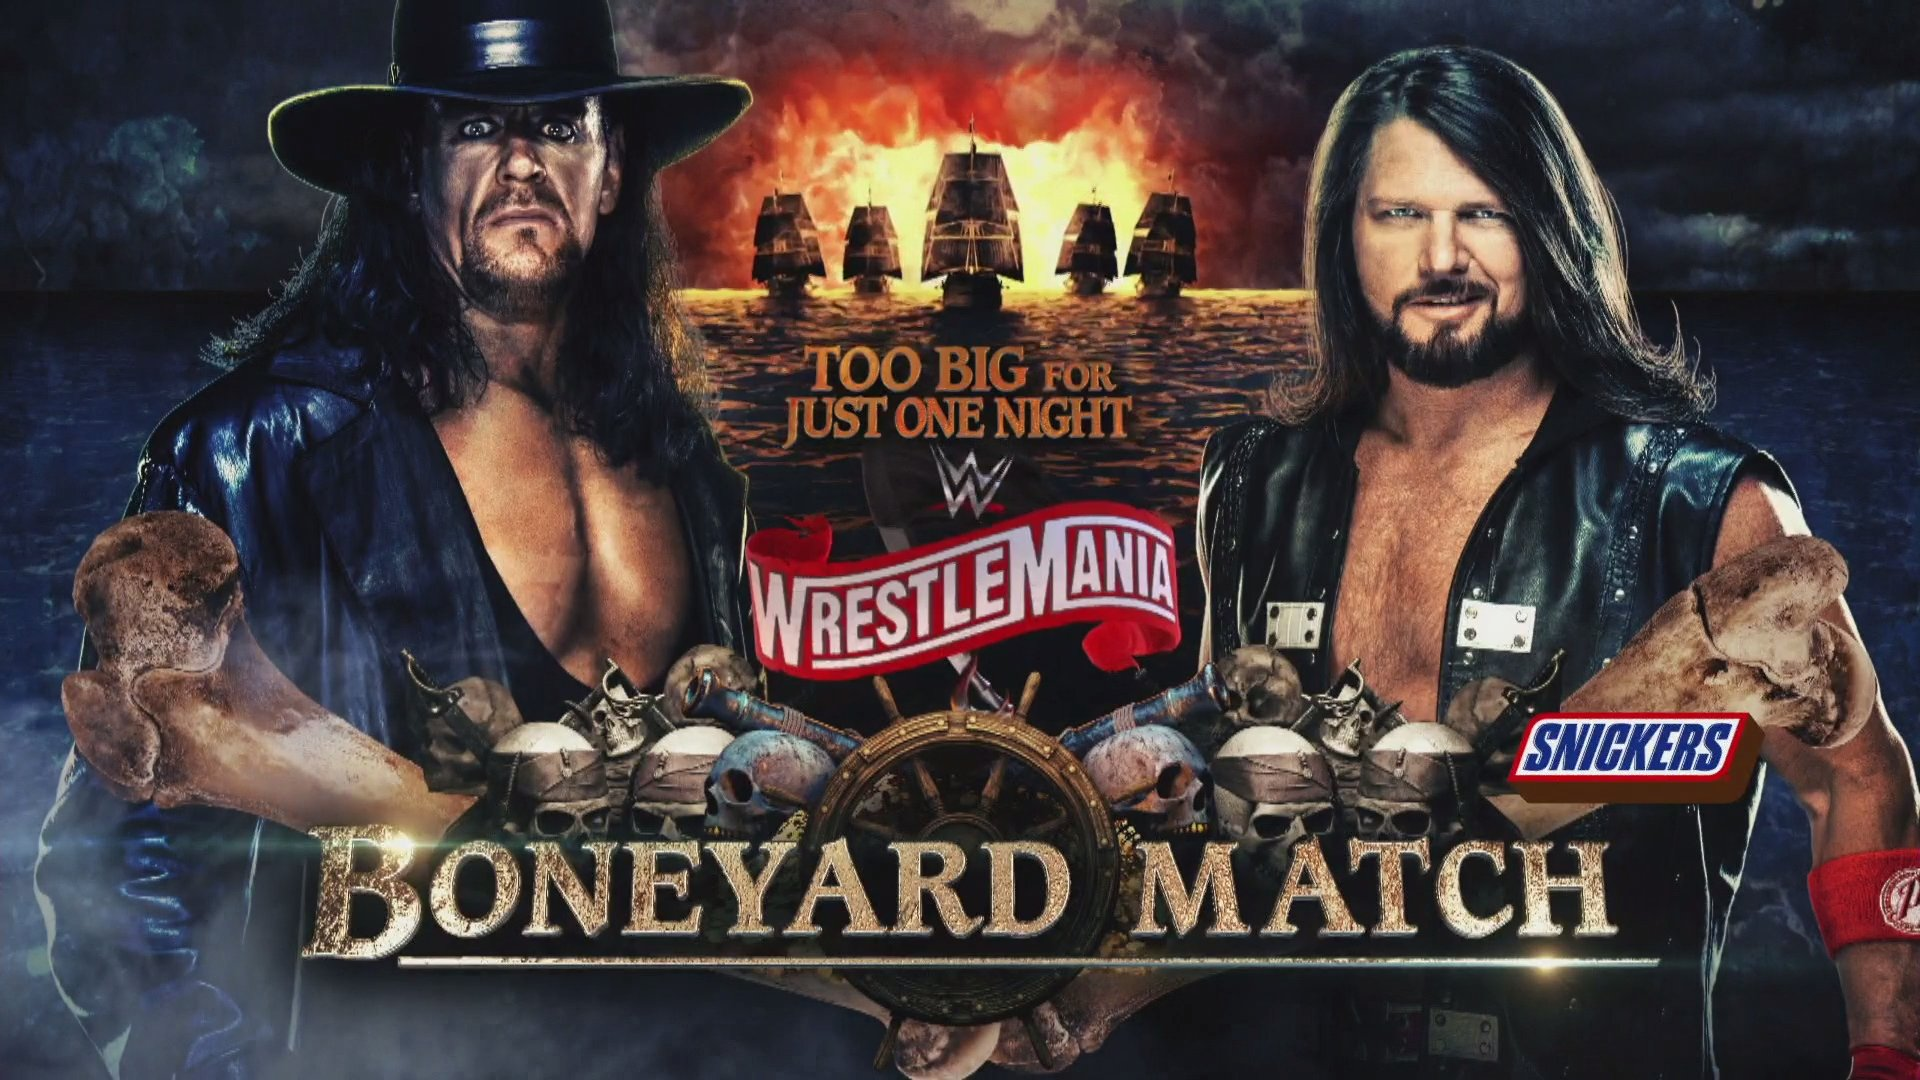 The Undertaker Vs. AJ Styles Wrestlemania Feud Continues After WWE Raw 1